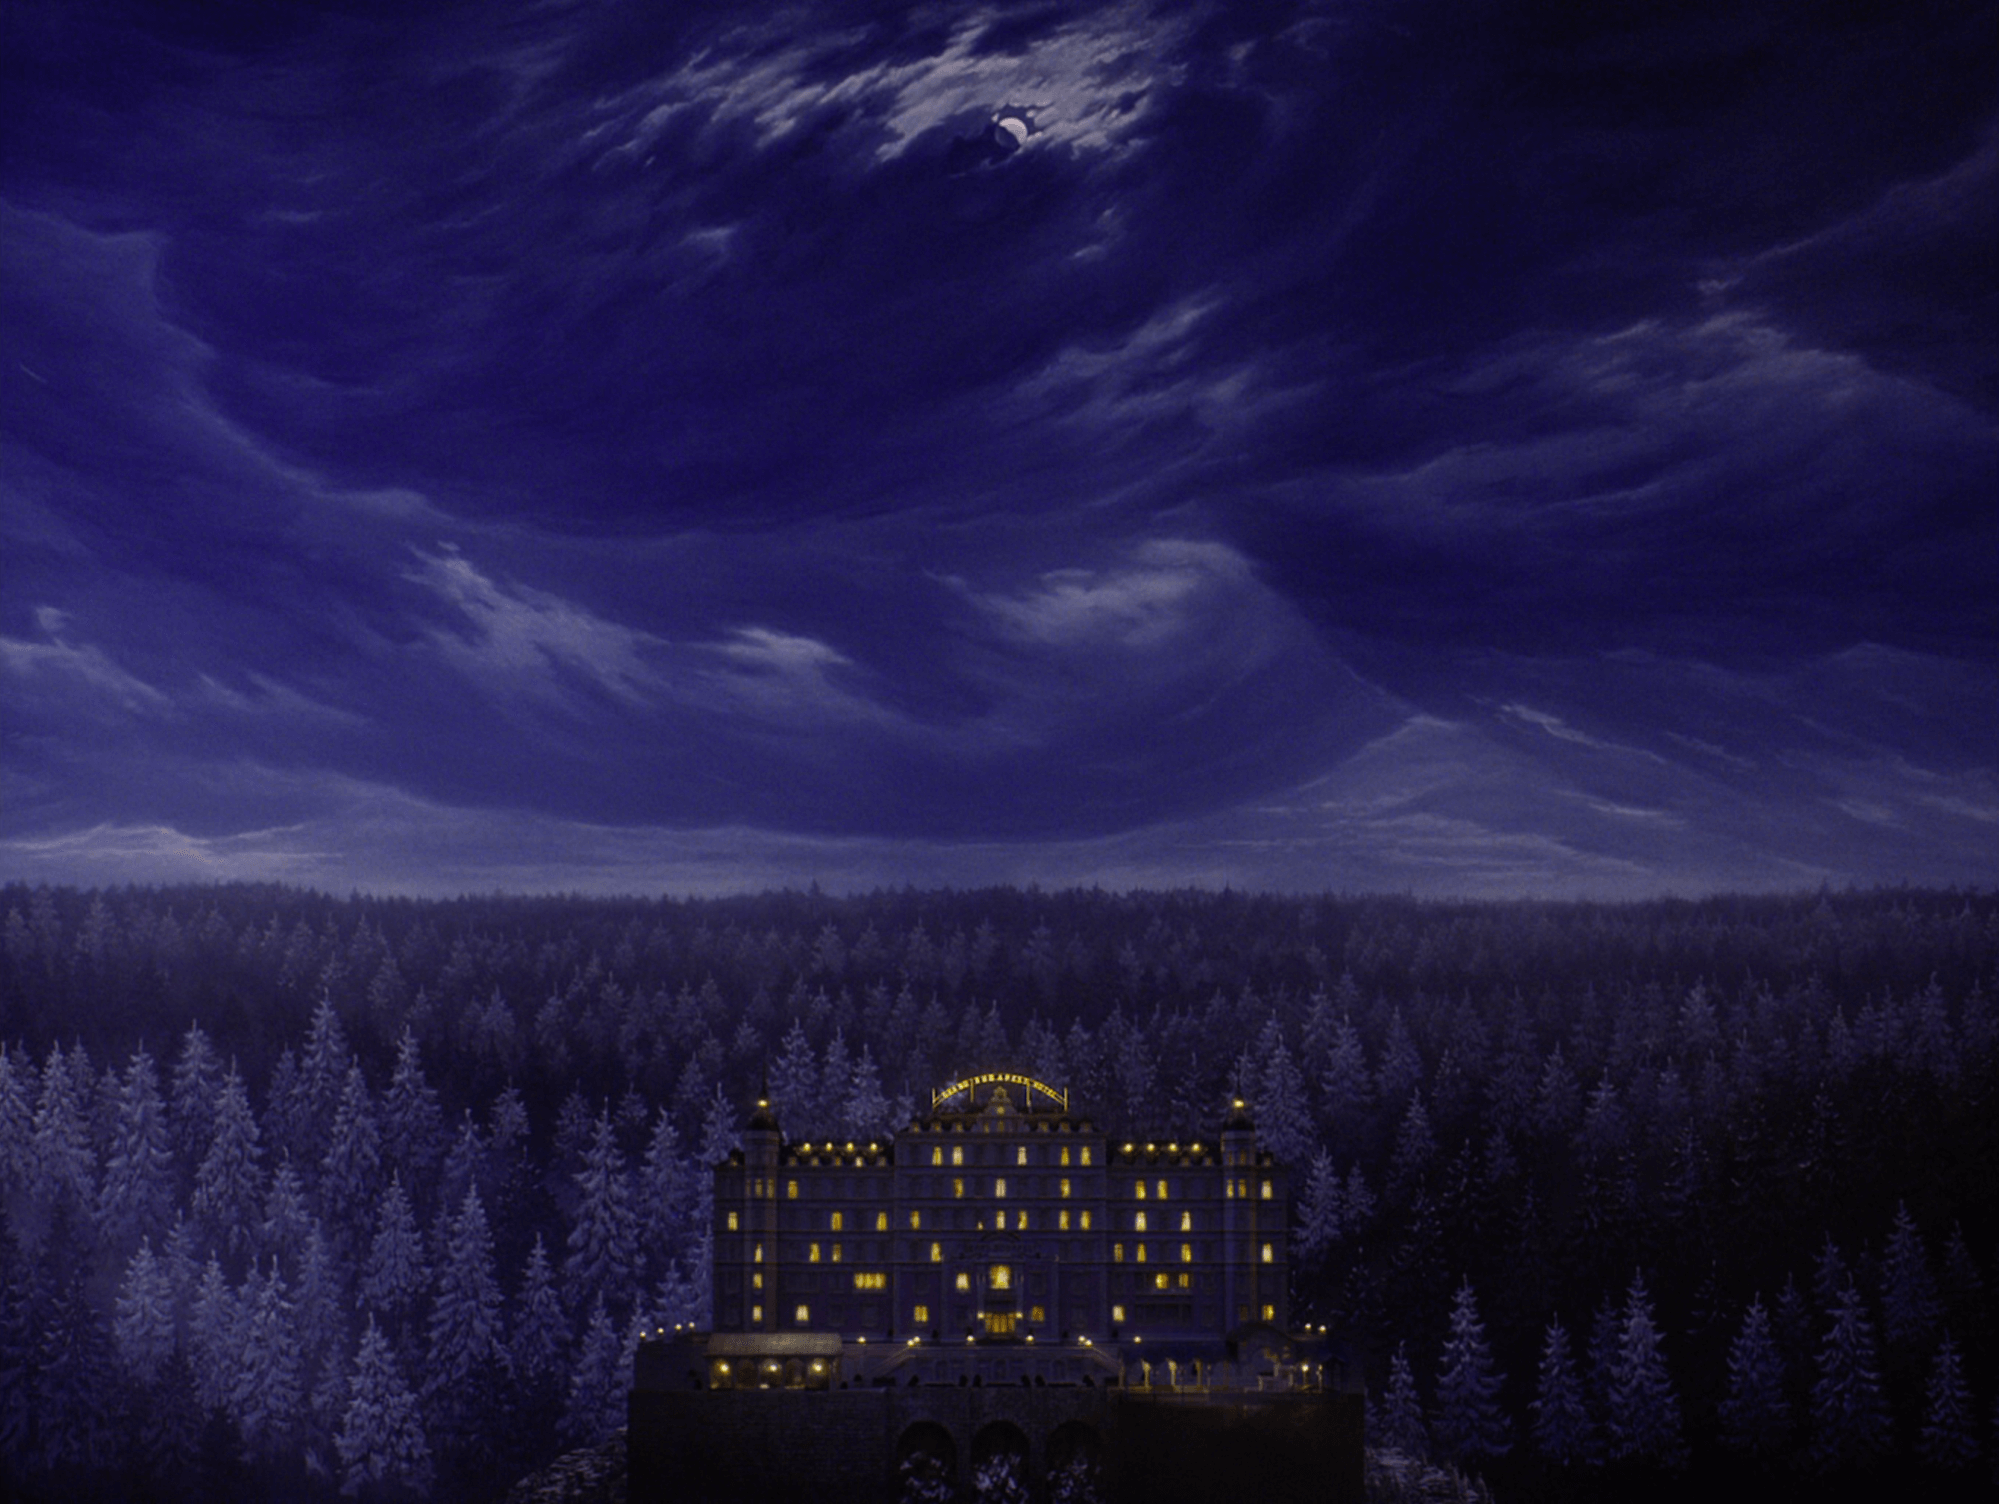 The Grand Budapest Hotel cinematography